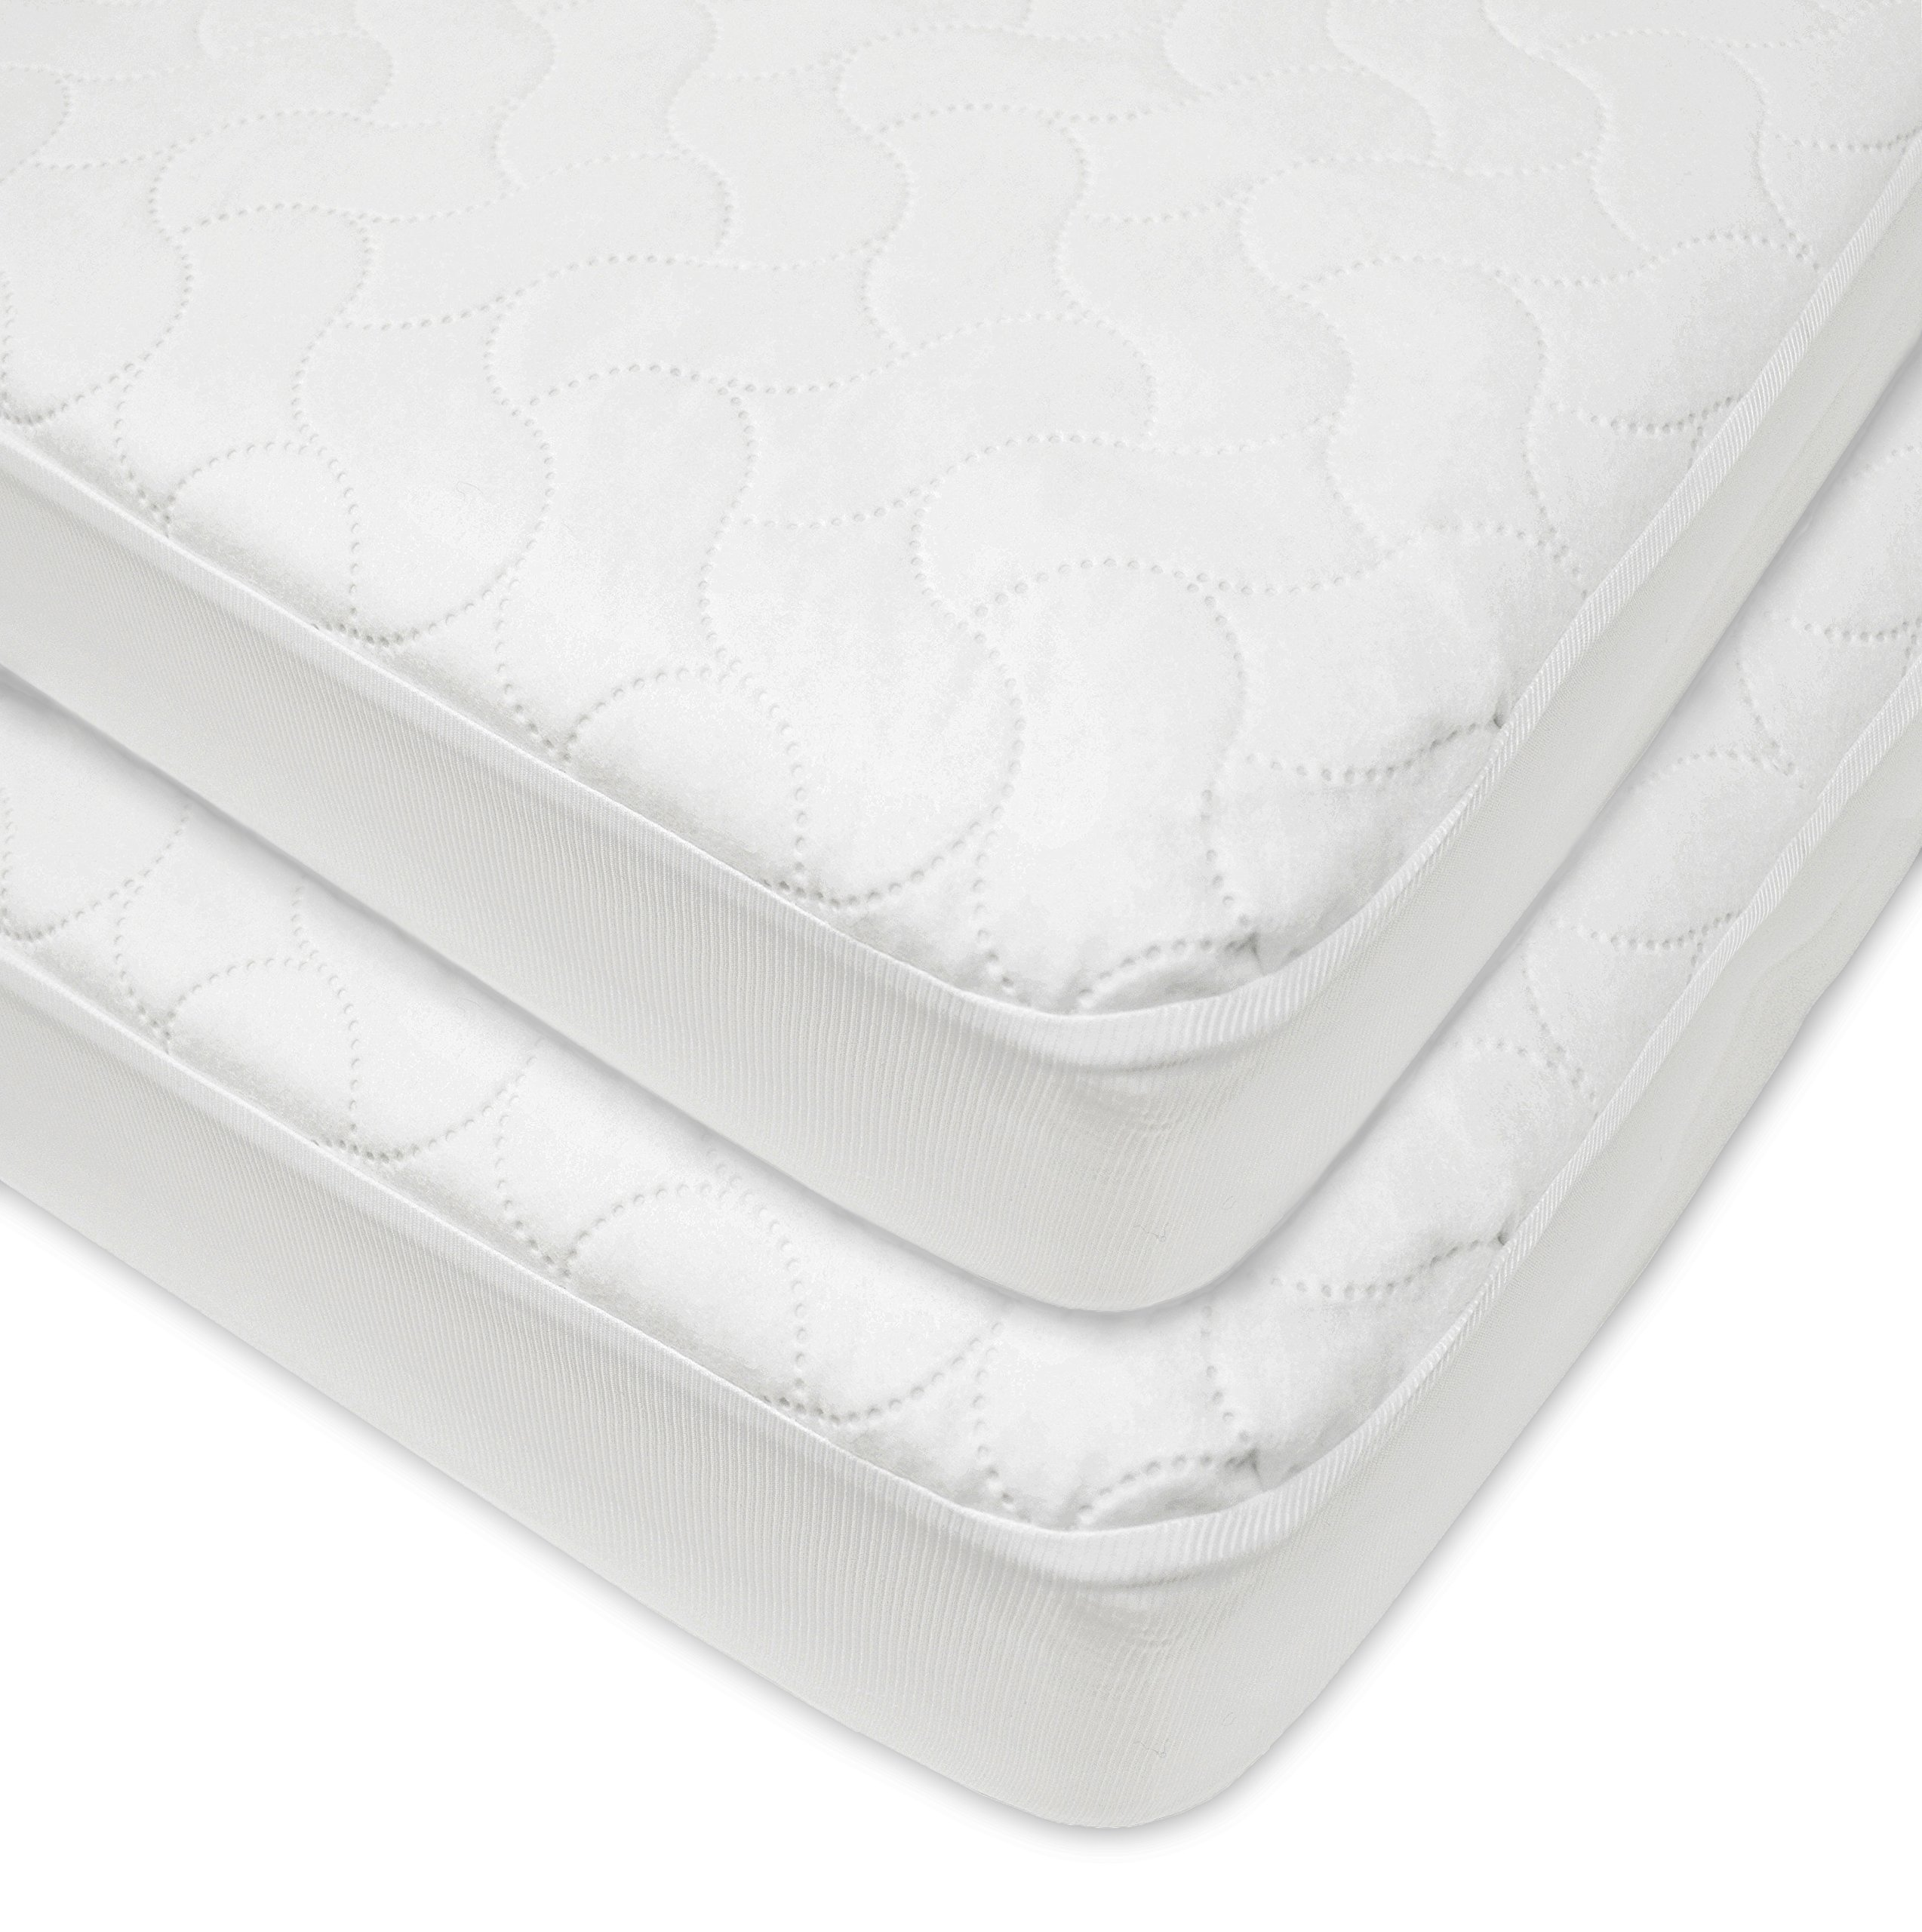 American Baby Company 2 Pack Waterproof Fitted Quilted Crib and Toddler Protective Pad Cover, White, for Boys and Girls by American Baby Company